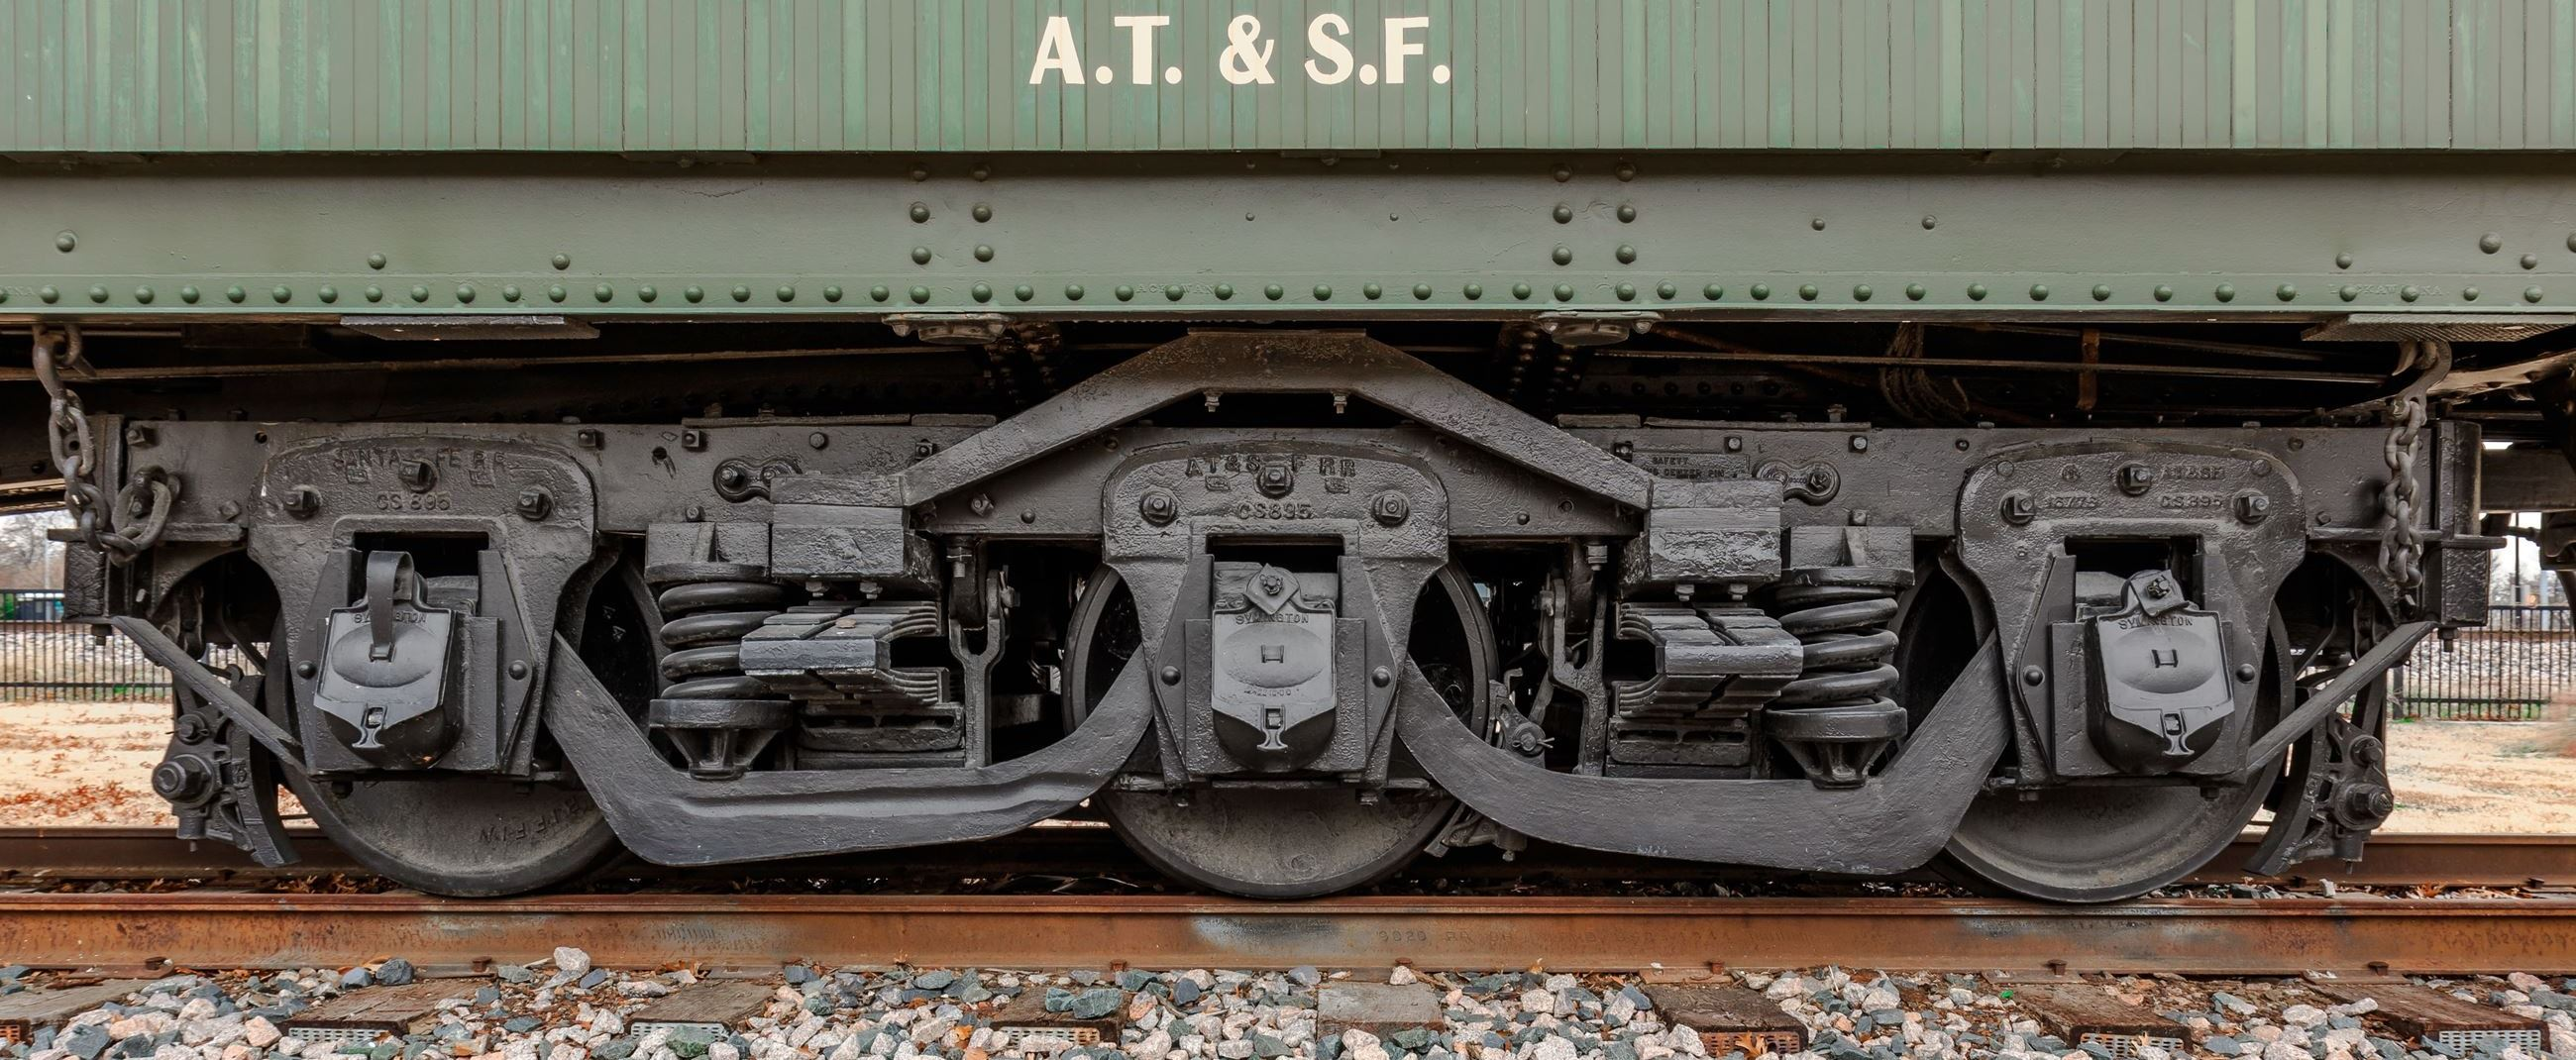 AT & SF lettering on the side of the Pullman Railcar